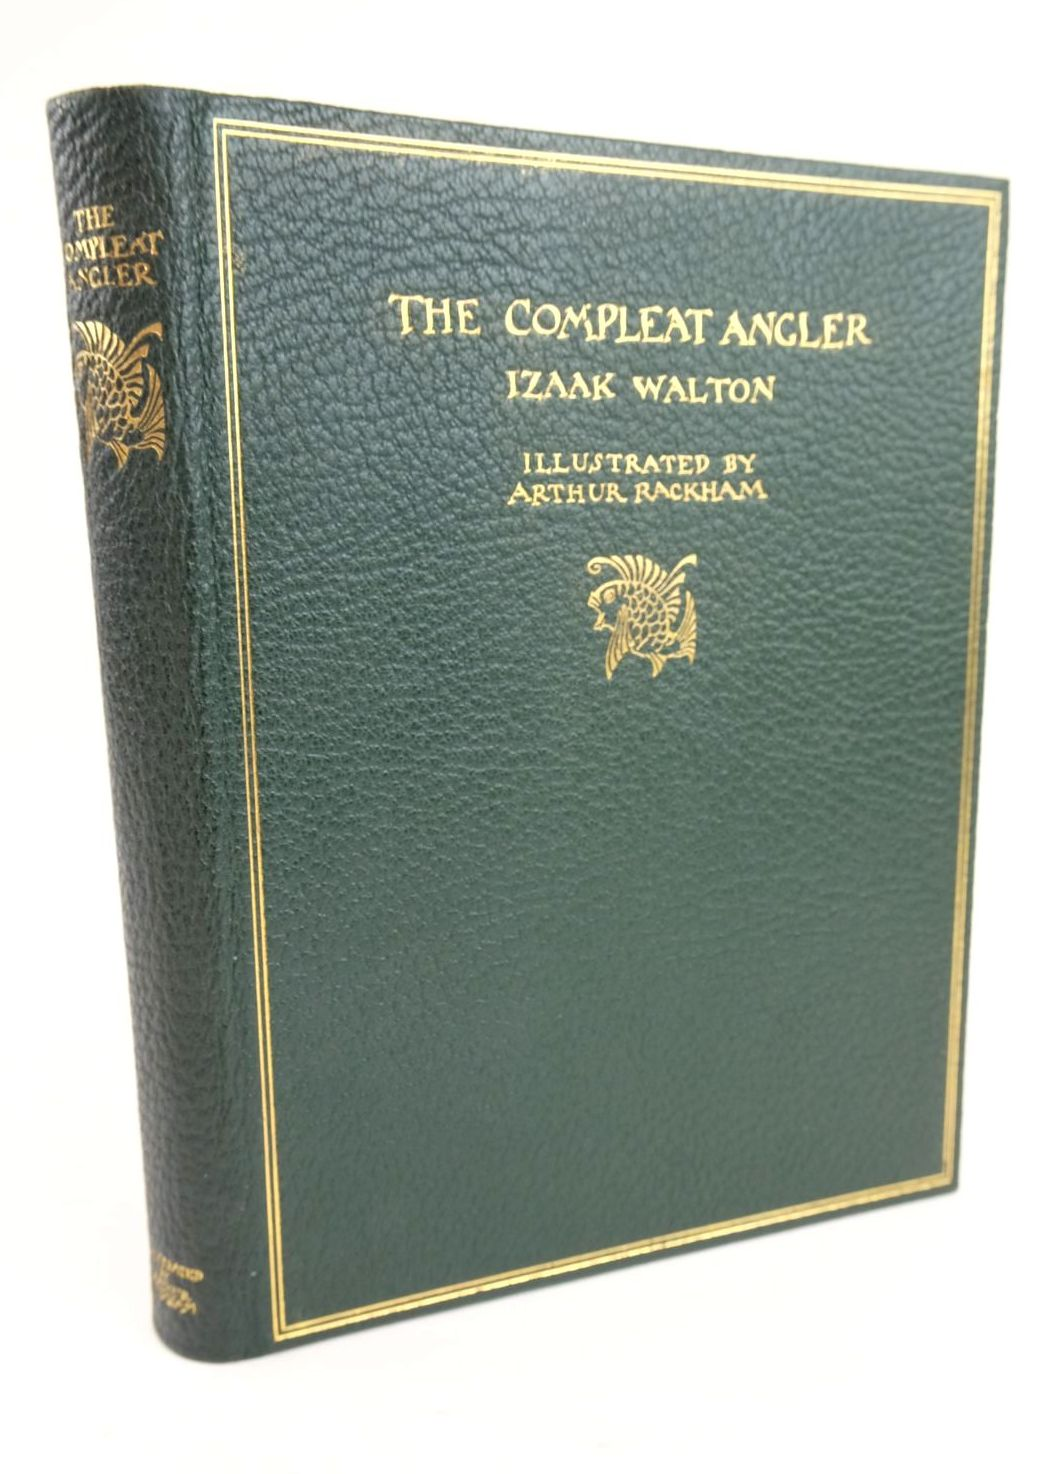 Photo of THE COMPLEAT ANGLER written by Walton, Izaak illustrated by Rackham, Arthur published by George G. Harrap & Co. Ltd. (STOCK CODE: 1319481)  for sale by Stella & Rose's Books